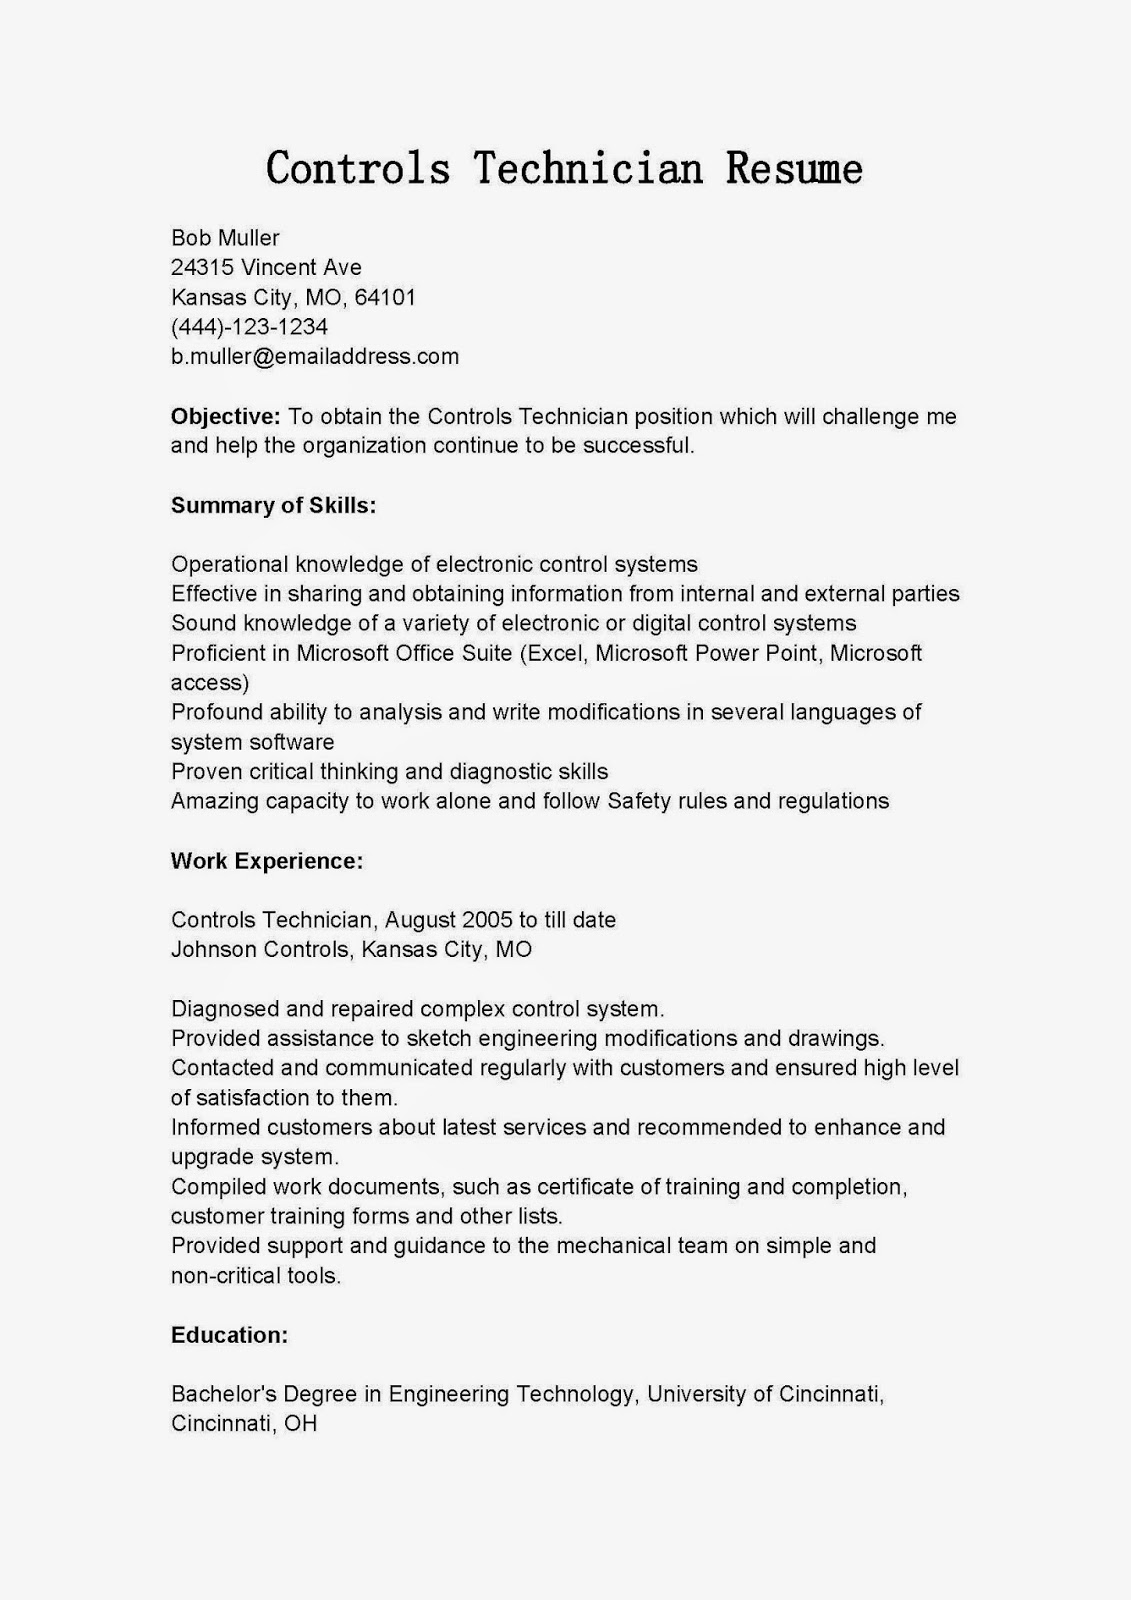 Quality Control Technician Resume 23.06.2017